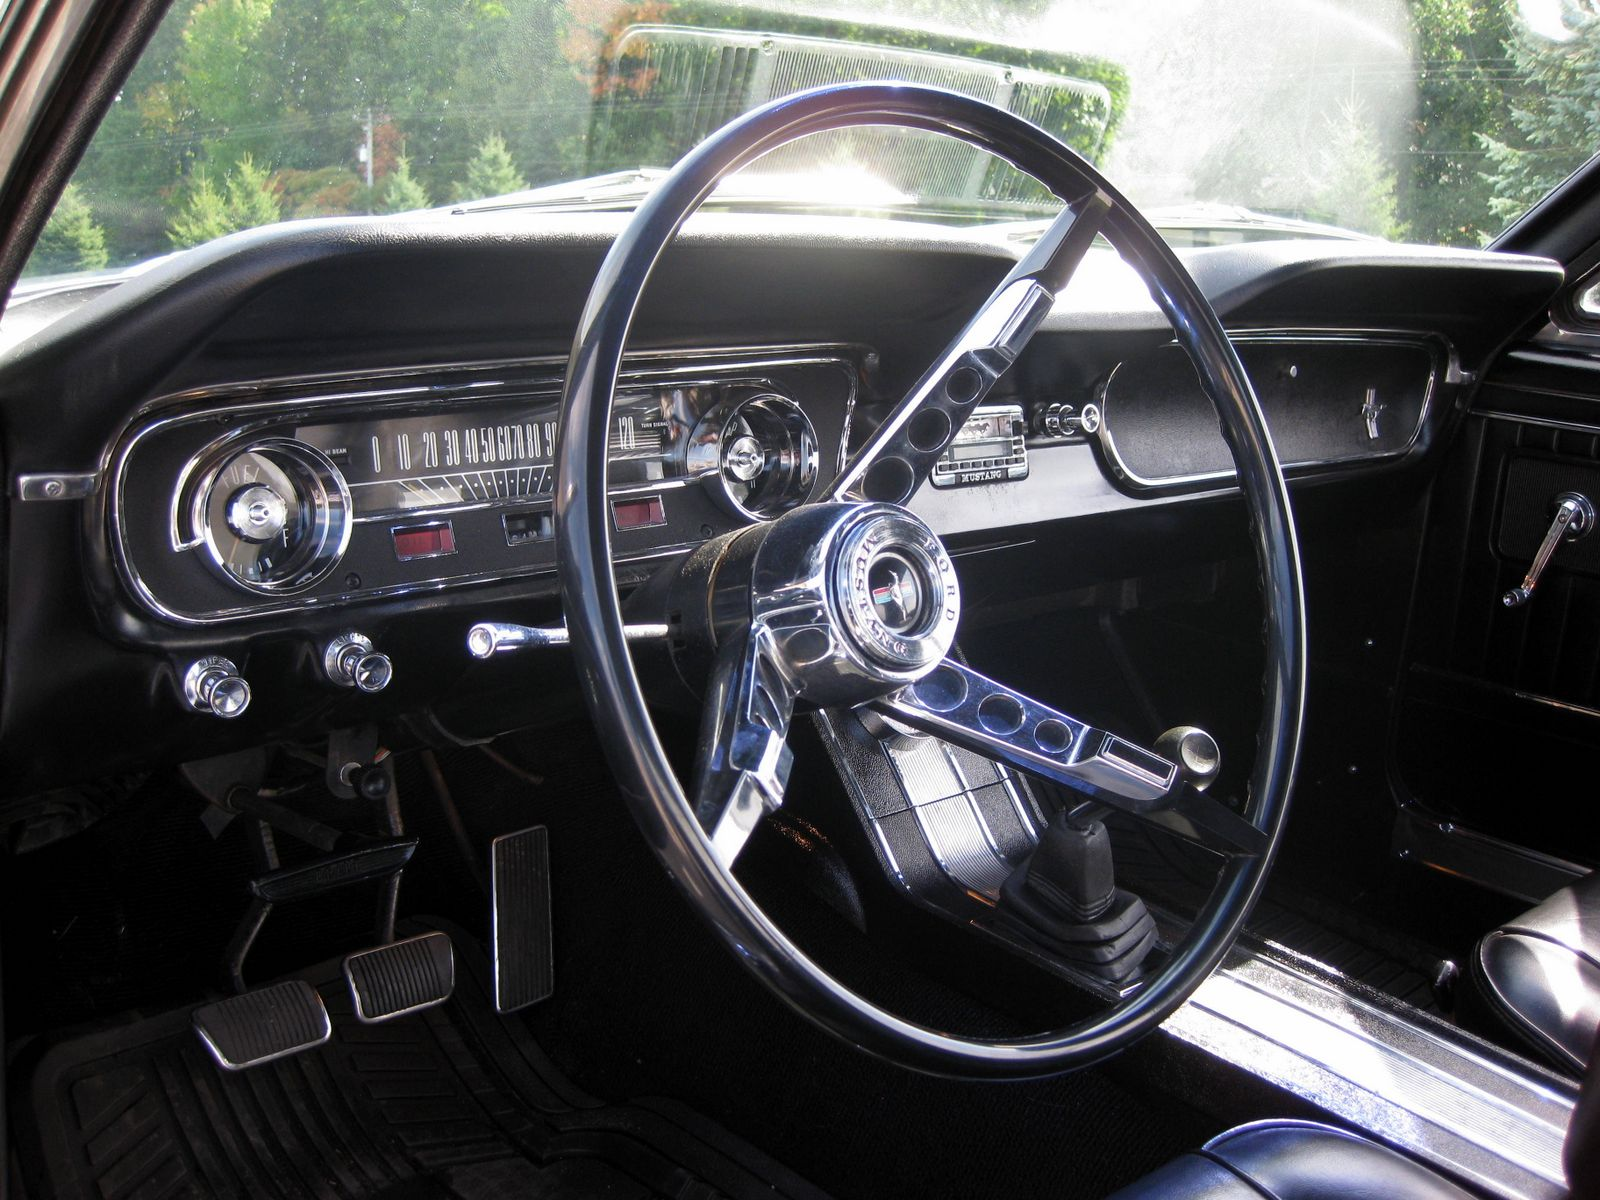 Ford mustang 1965 interior car autos gallery - Interior ford mustang ...